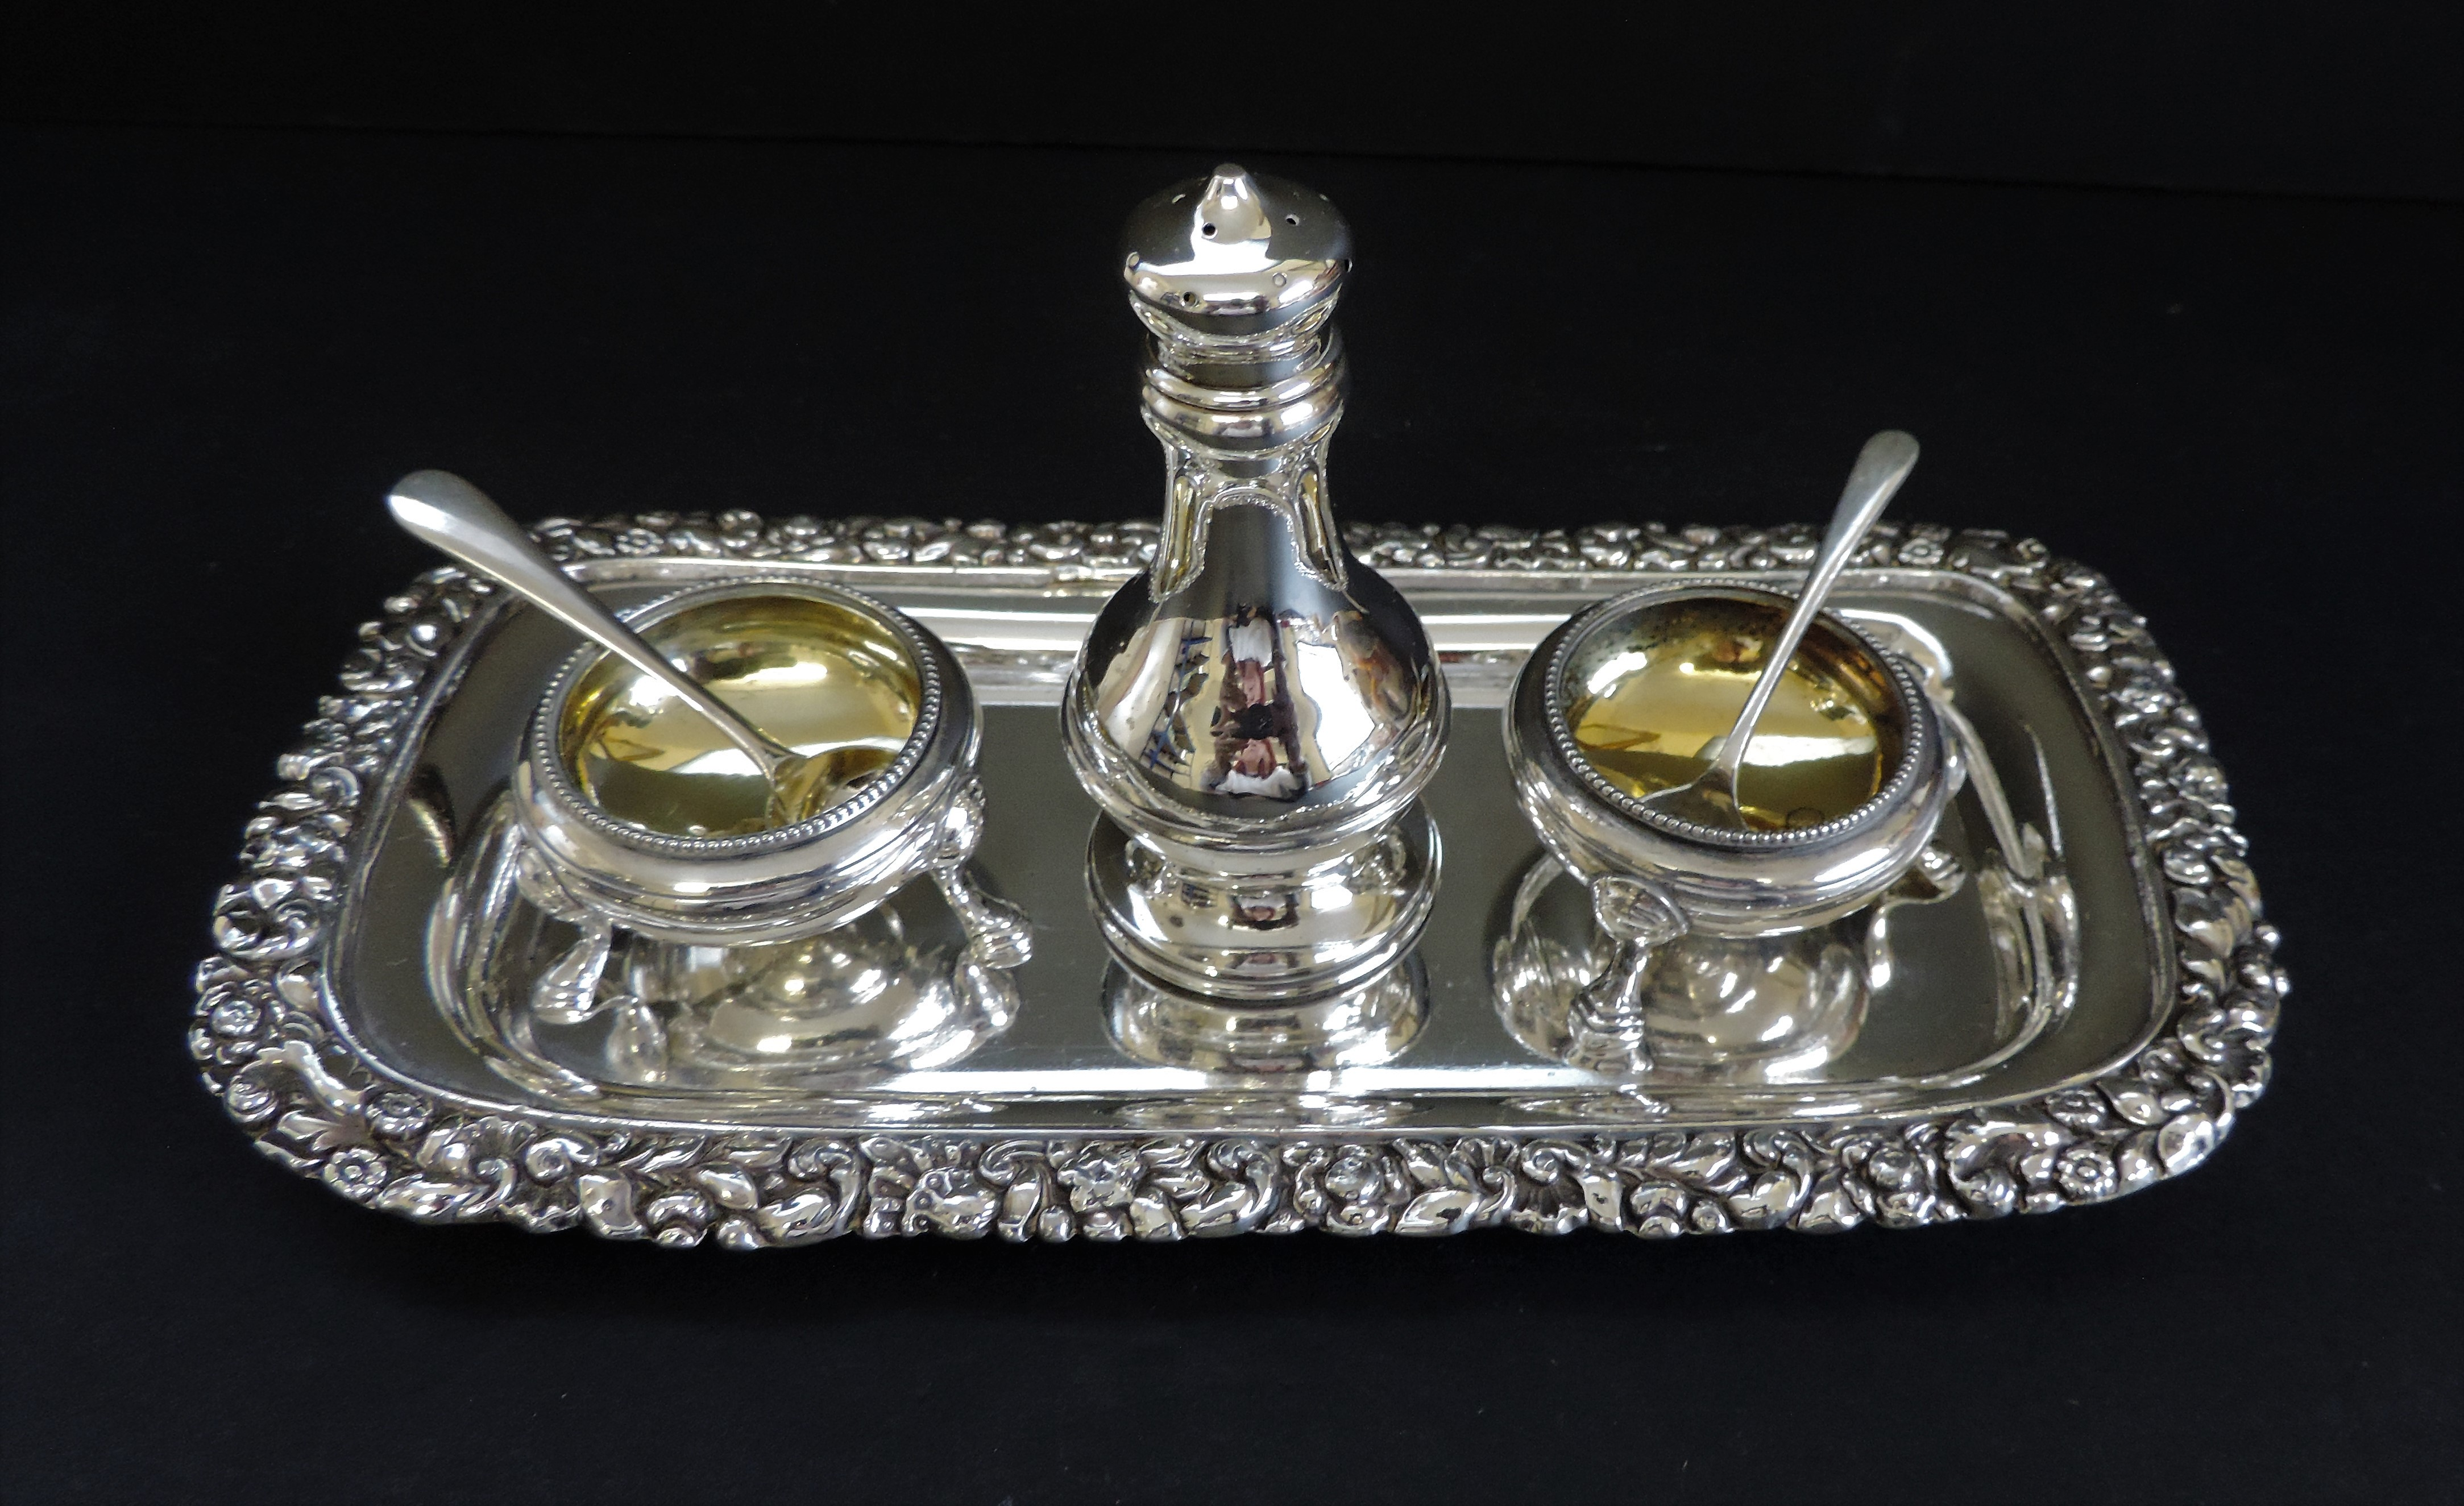 Antique Silver Plated 6 Piece Condiment Set - Image 3 of 5